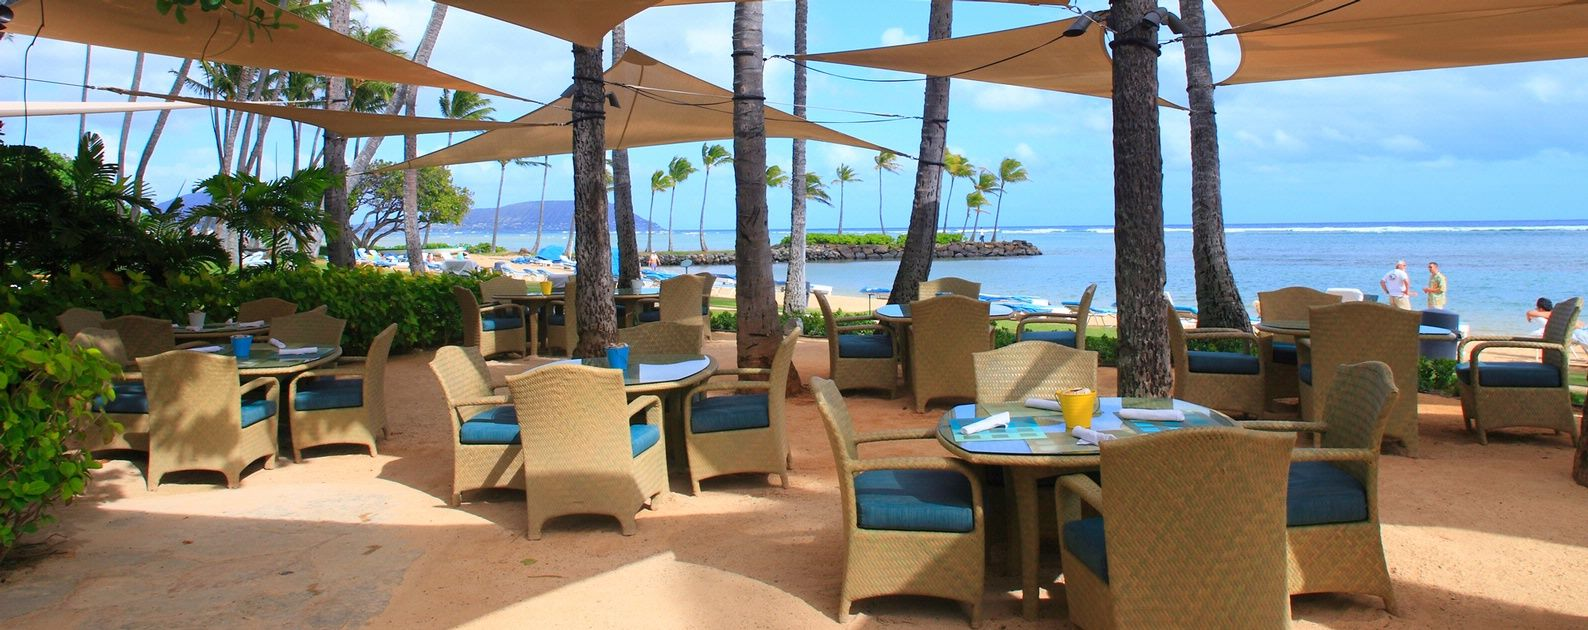 Seaside Grill At The Kahala Hotel Resort Honolulu Hawaii